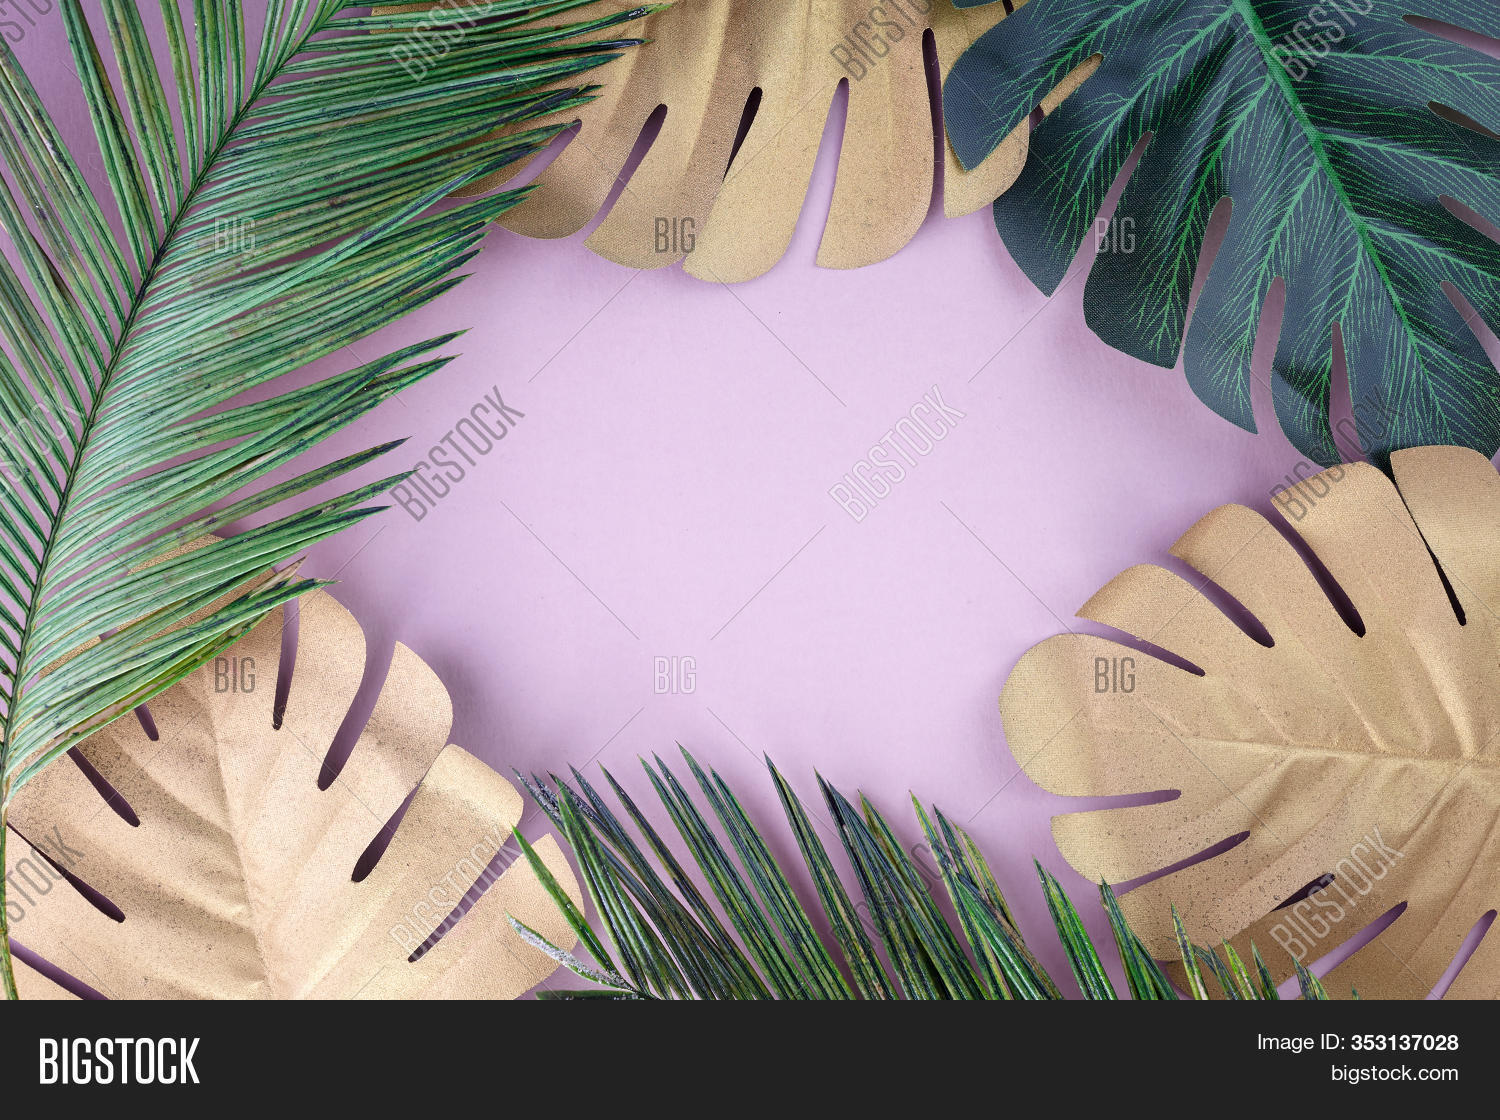 Tropical Leaves Gold Image Photo Free Trial Bigstock Artificial leaf tropical palm leaves simulation leaf for luau theme party decorations diy home garden decoration photo props tropical leaves on sale. tropical leaves gold image photo